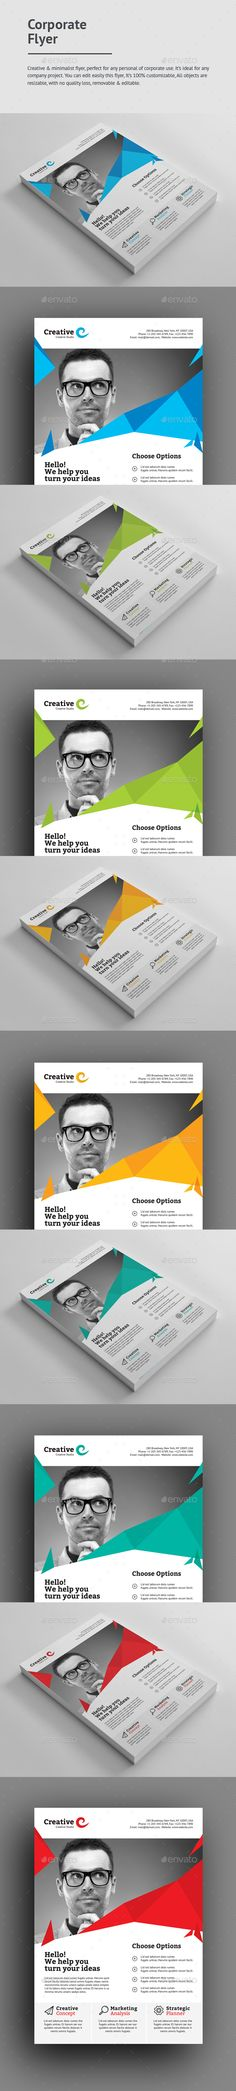 Home Repair Flyer Template Flyers, Home repair and Flyer template - coupon flyer template